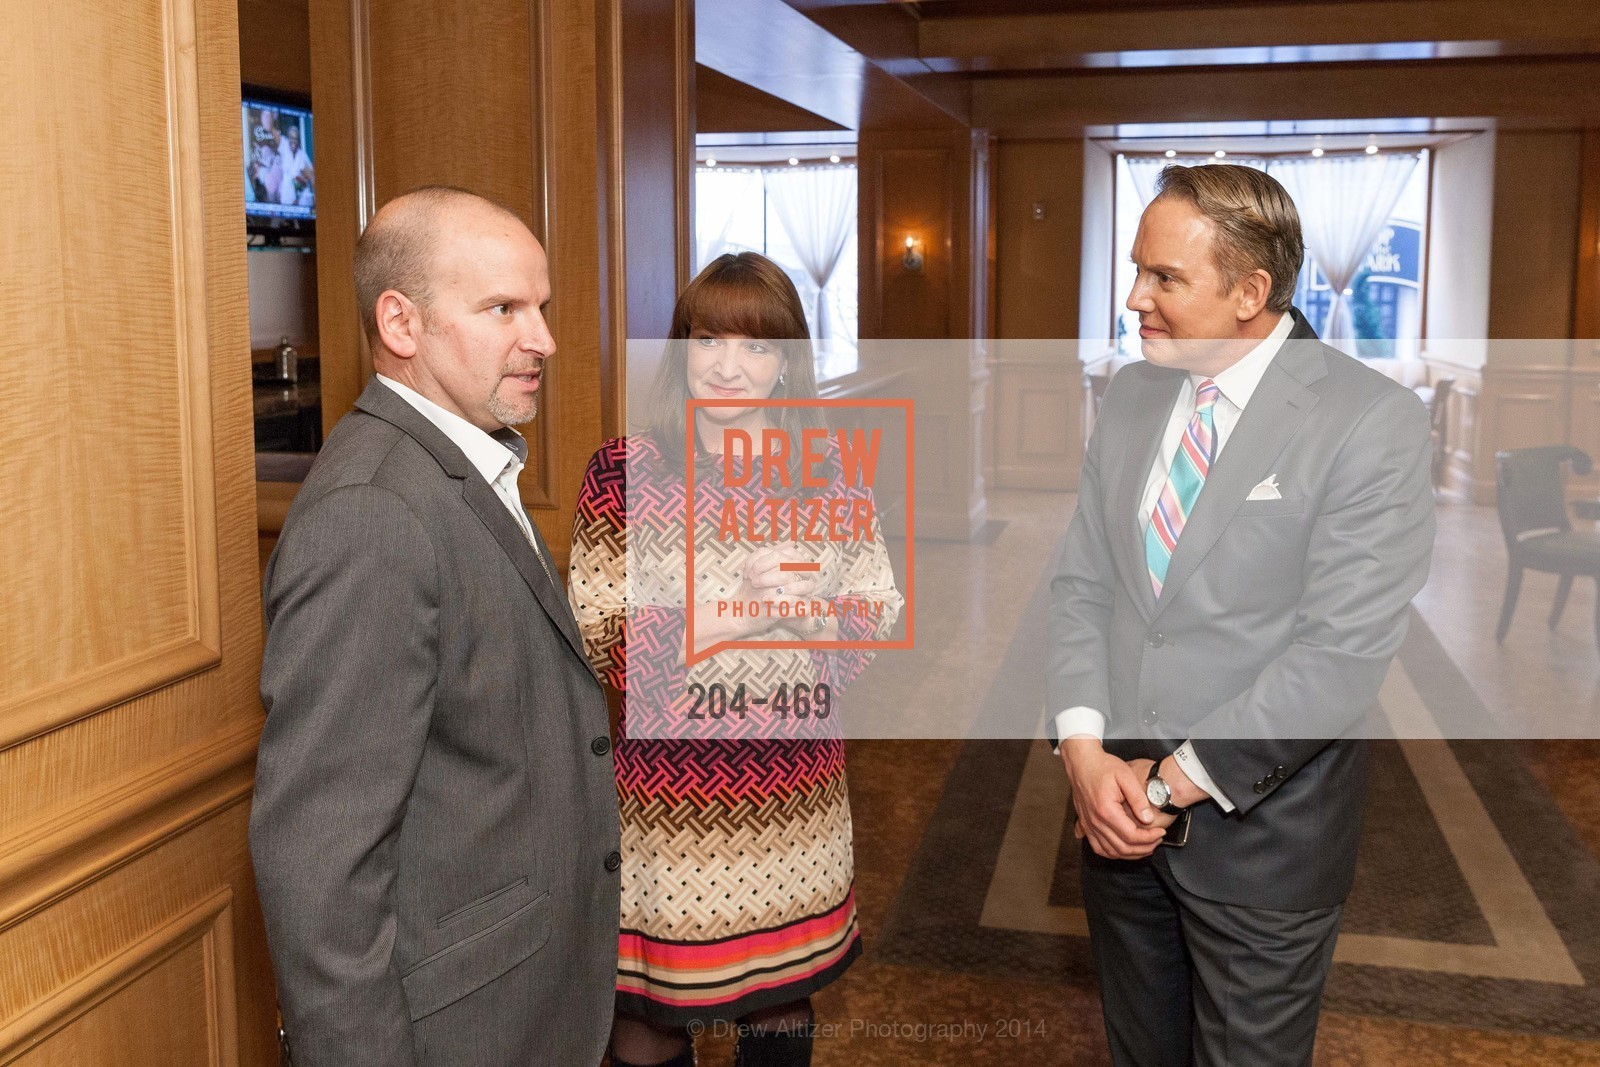 """Extras, FAIRMONT LUNCHEON for CNBC """"Secret Lives of the Super Rich."""", January 21st, 2014, Photo,Drew Altizer, Drew Altizer Photography, full-service event agency, private events, San Francisco photographer, photographer California"""